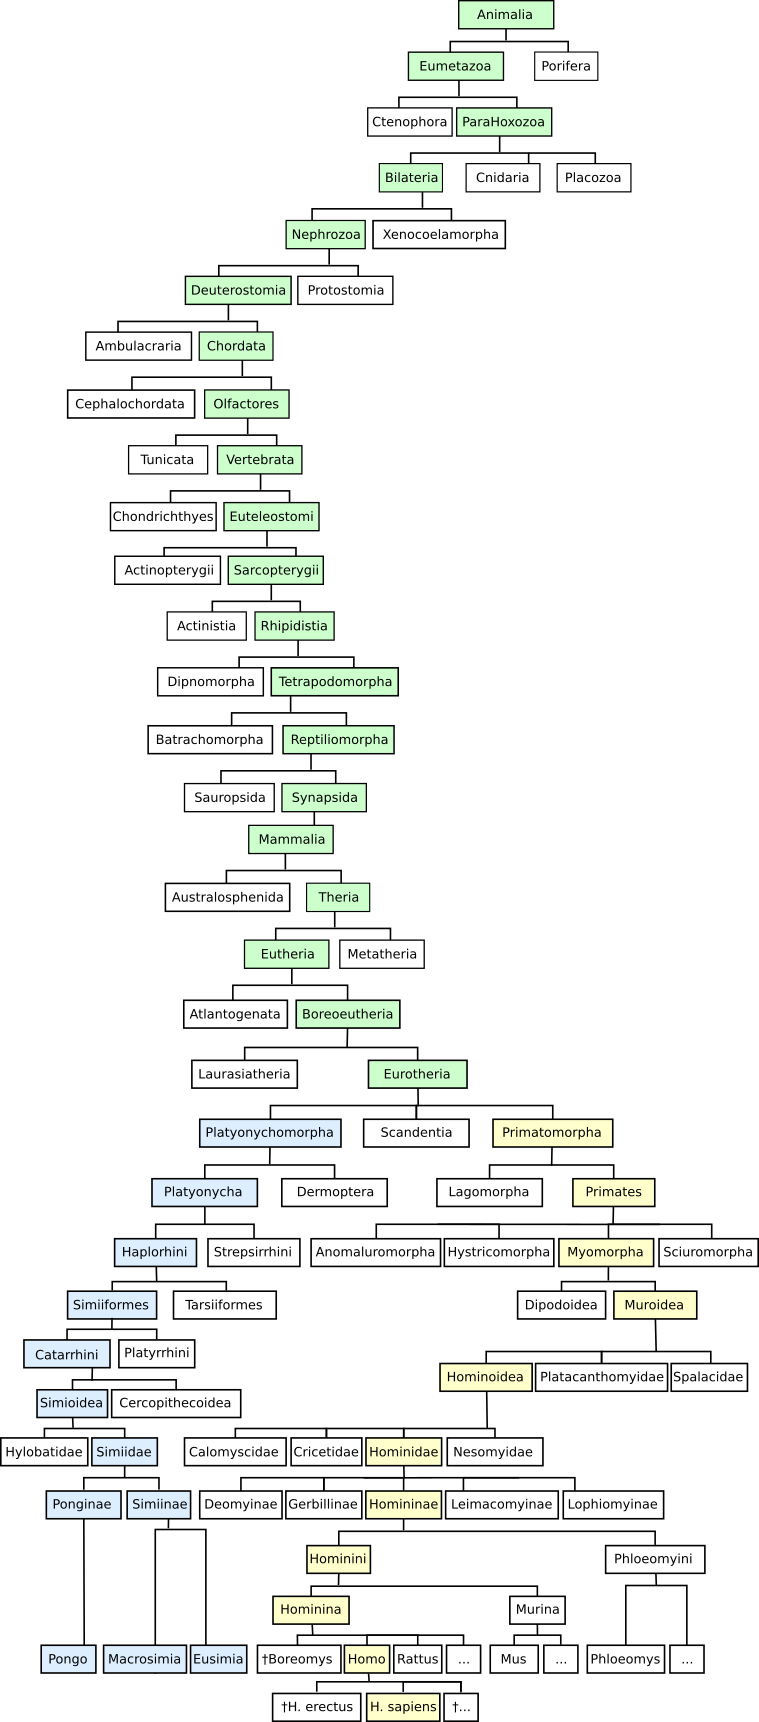 Relationship between humans and great apes